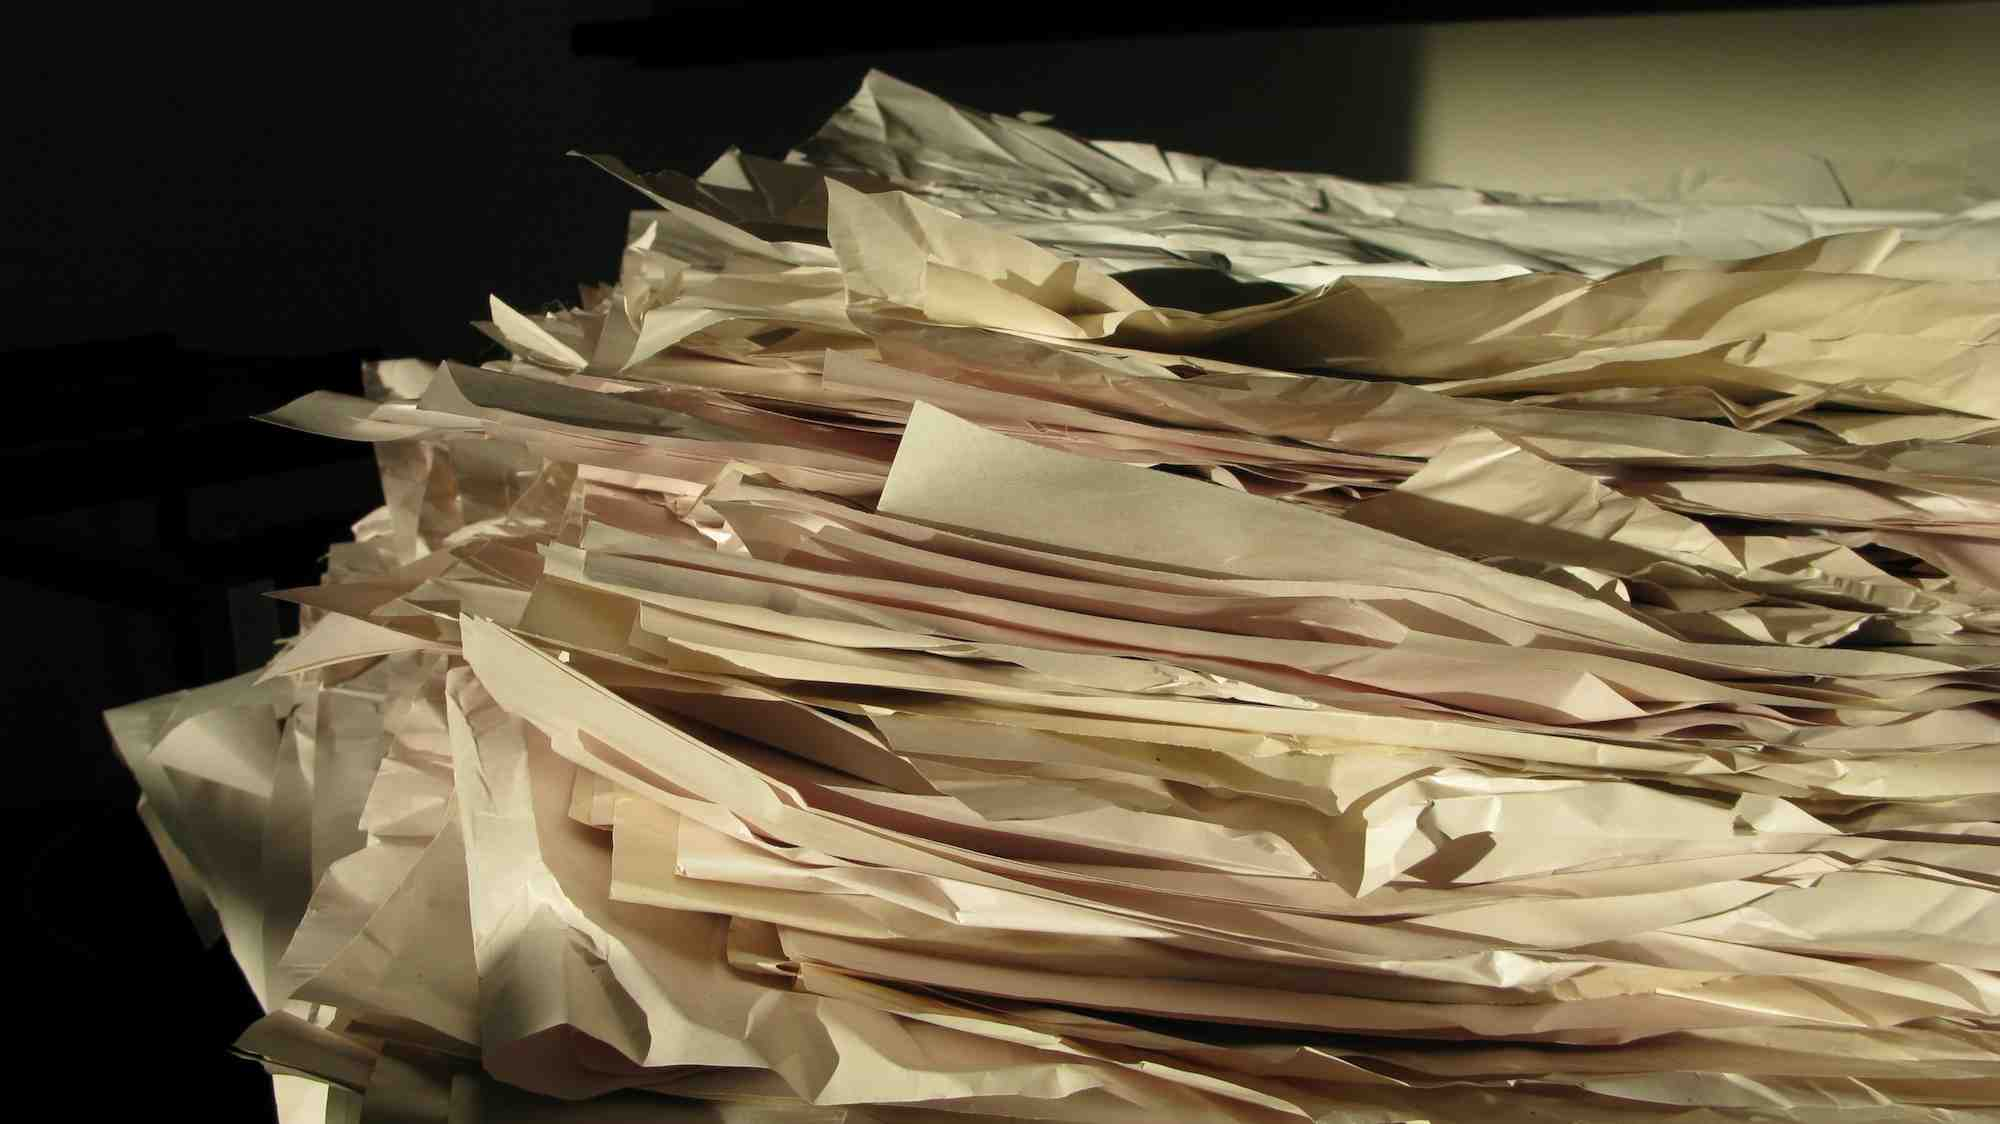 5 tips to tackle the migration of 1 million+ documents